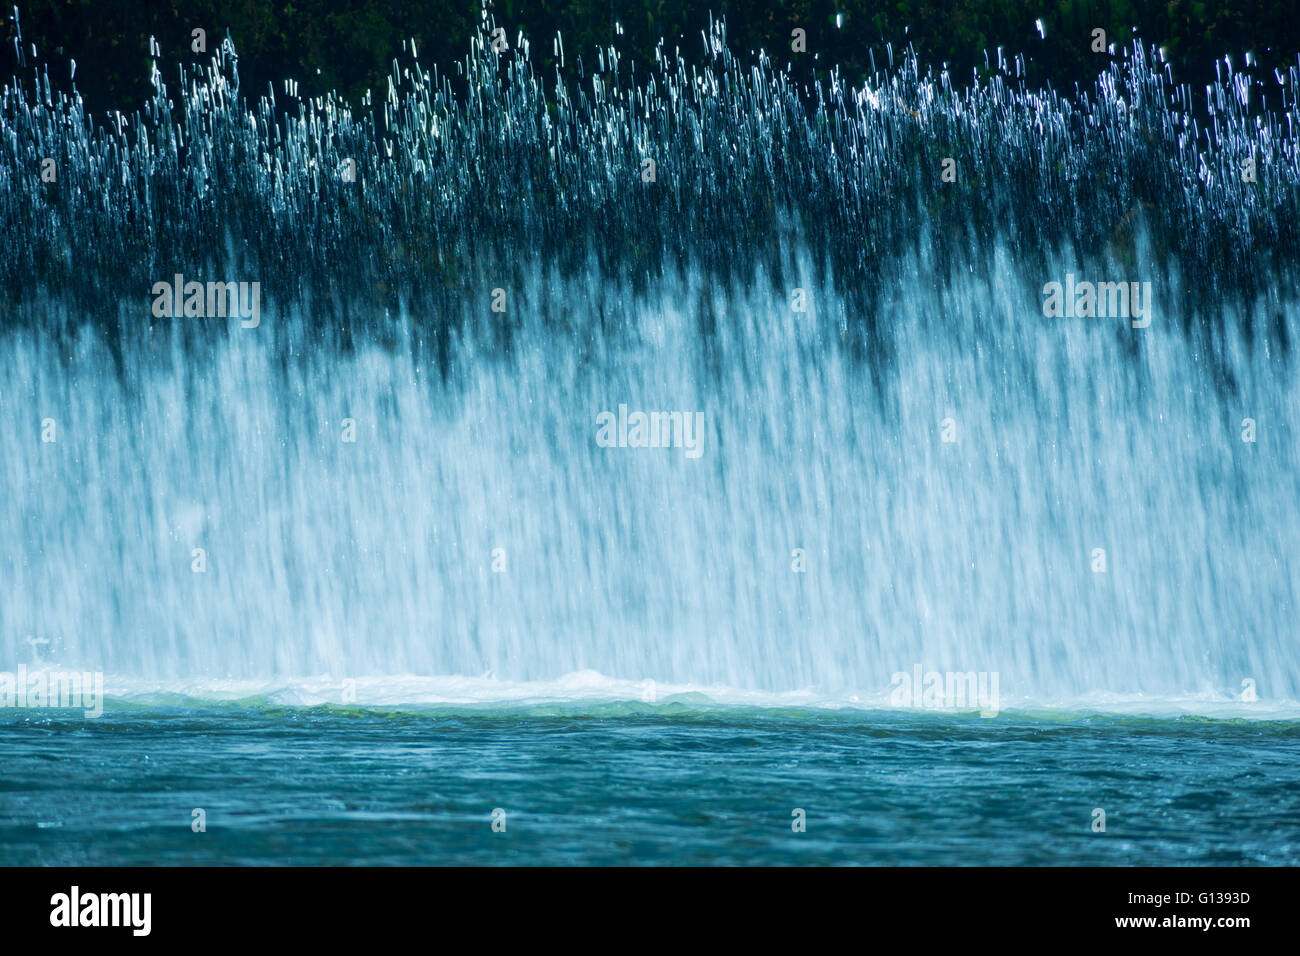 CURTAIN OF FRESH WATER CASCADES OVER SPILLWAY INTO CALM POOL ON SMALL RIVER - Stock Image